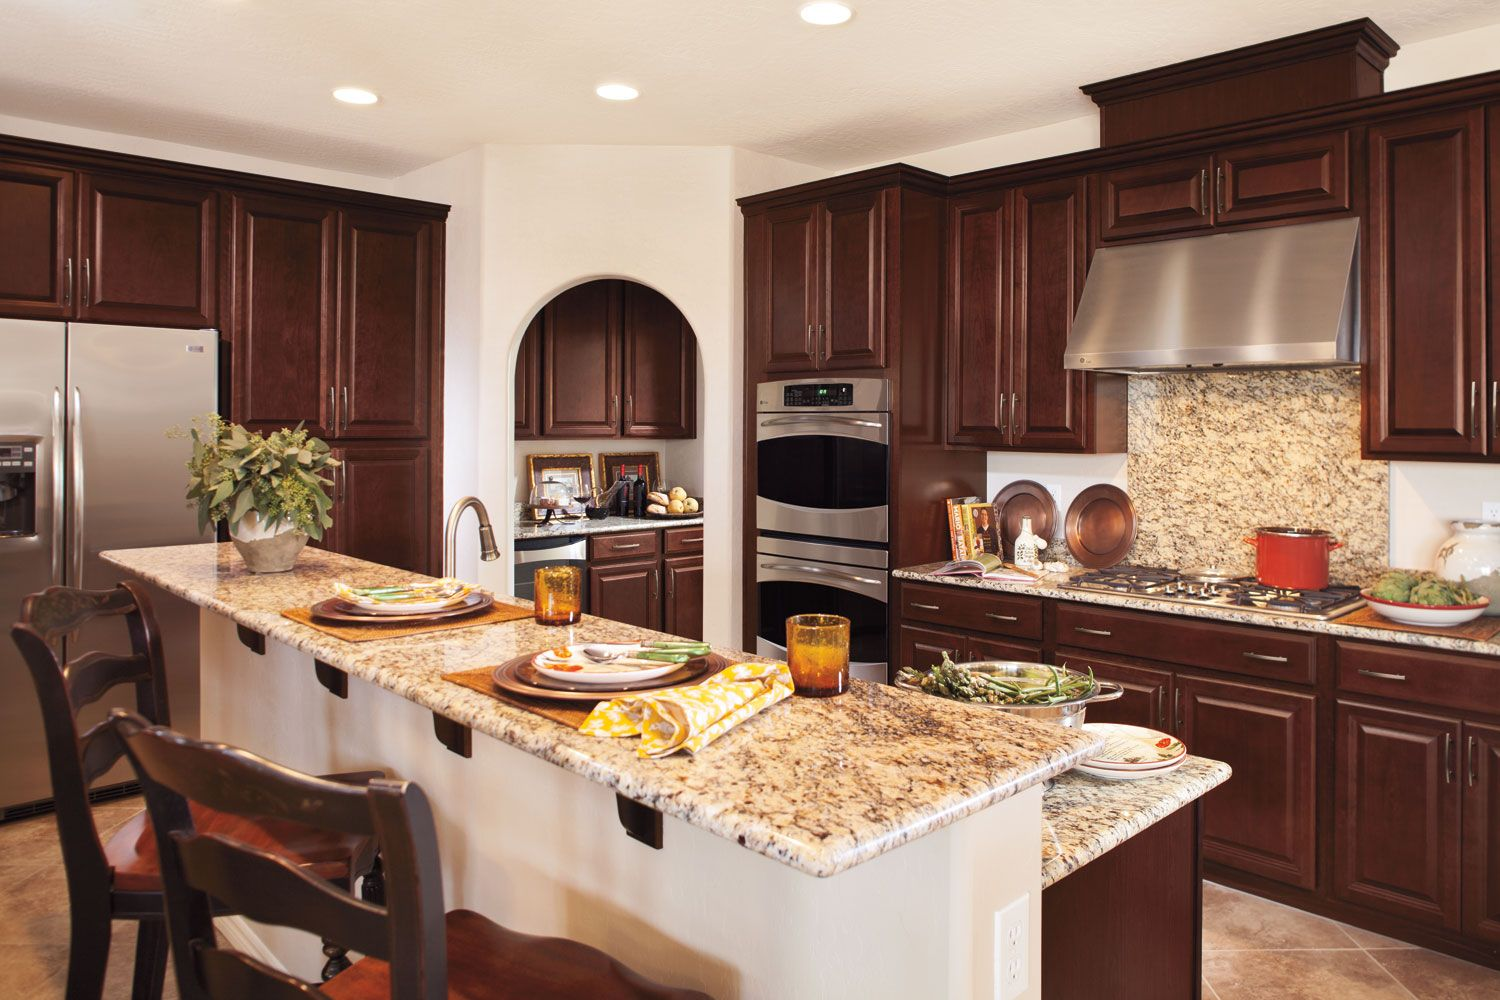 Luxury Kitchen Furniture Luxury Kitchen Features Timberlake Cabinets Granite Countertops